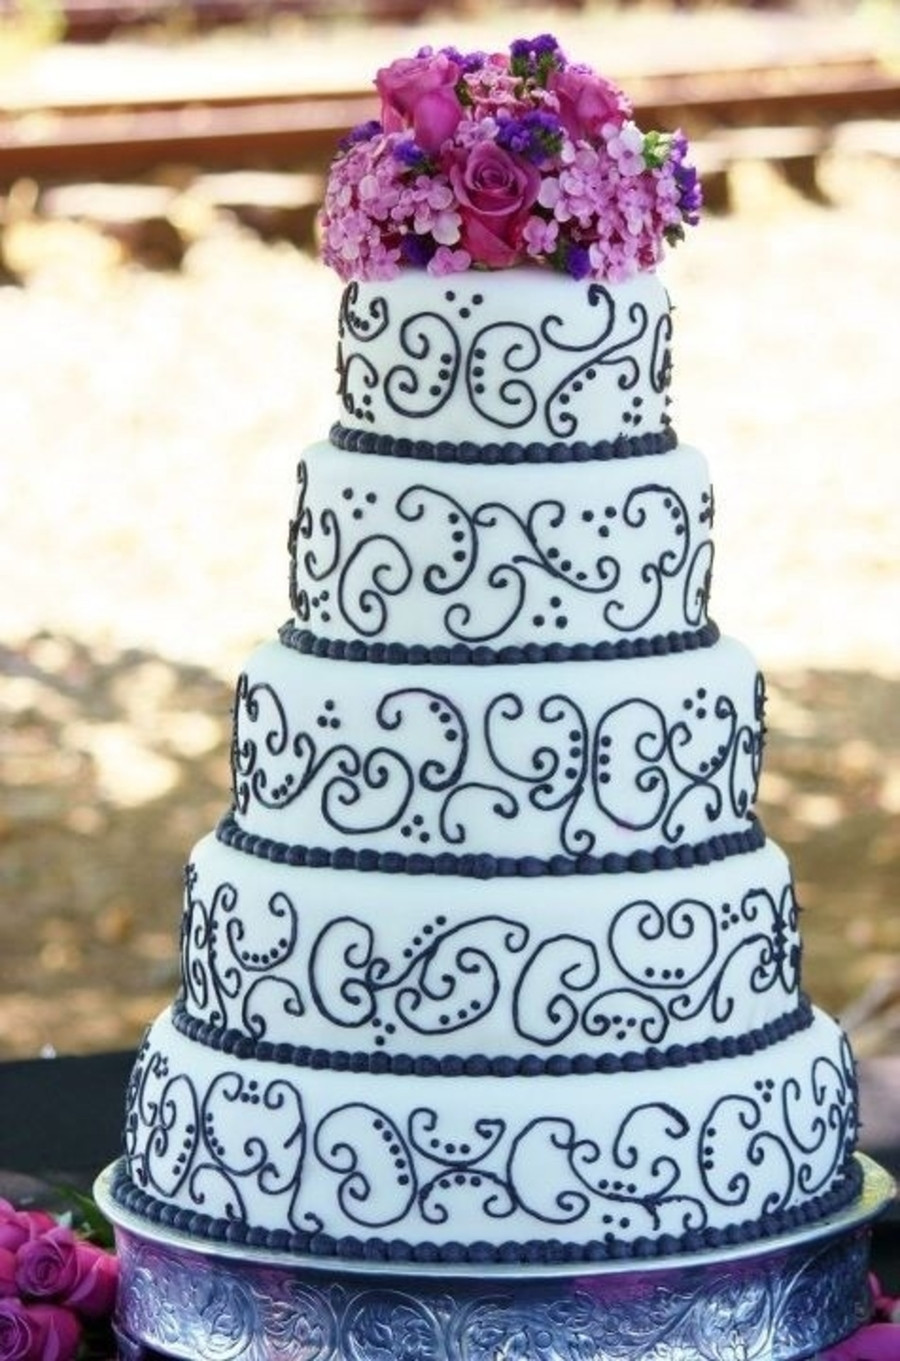 Wedding Cake Purple And White  Black And White W Purple Wedding Cake CakeCentral